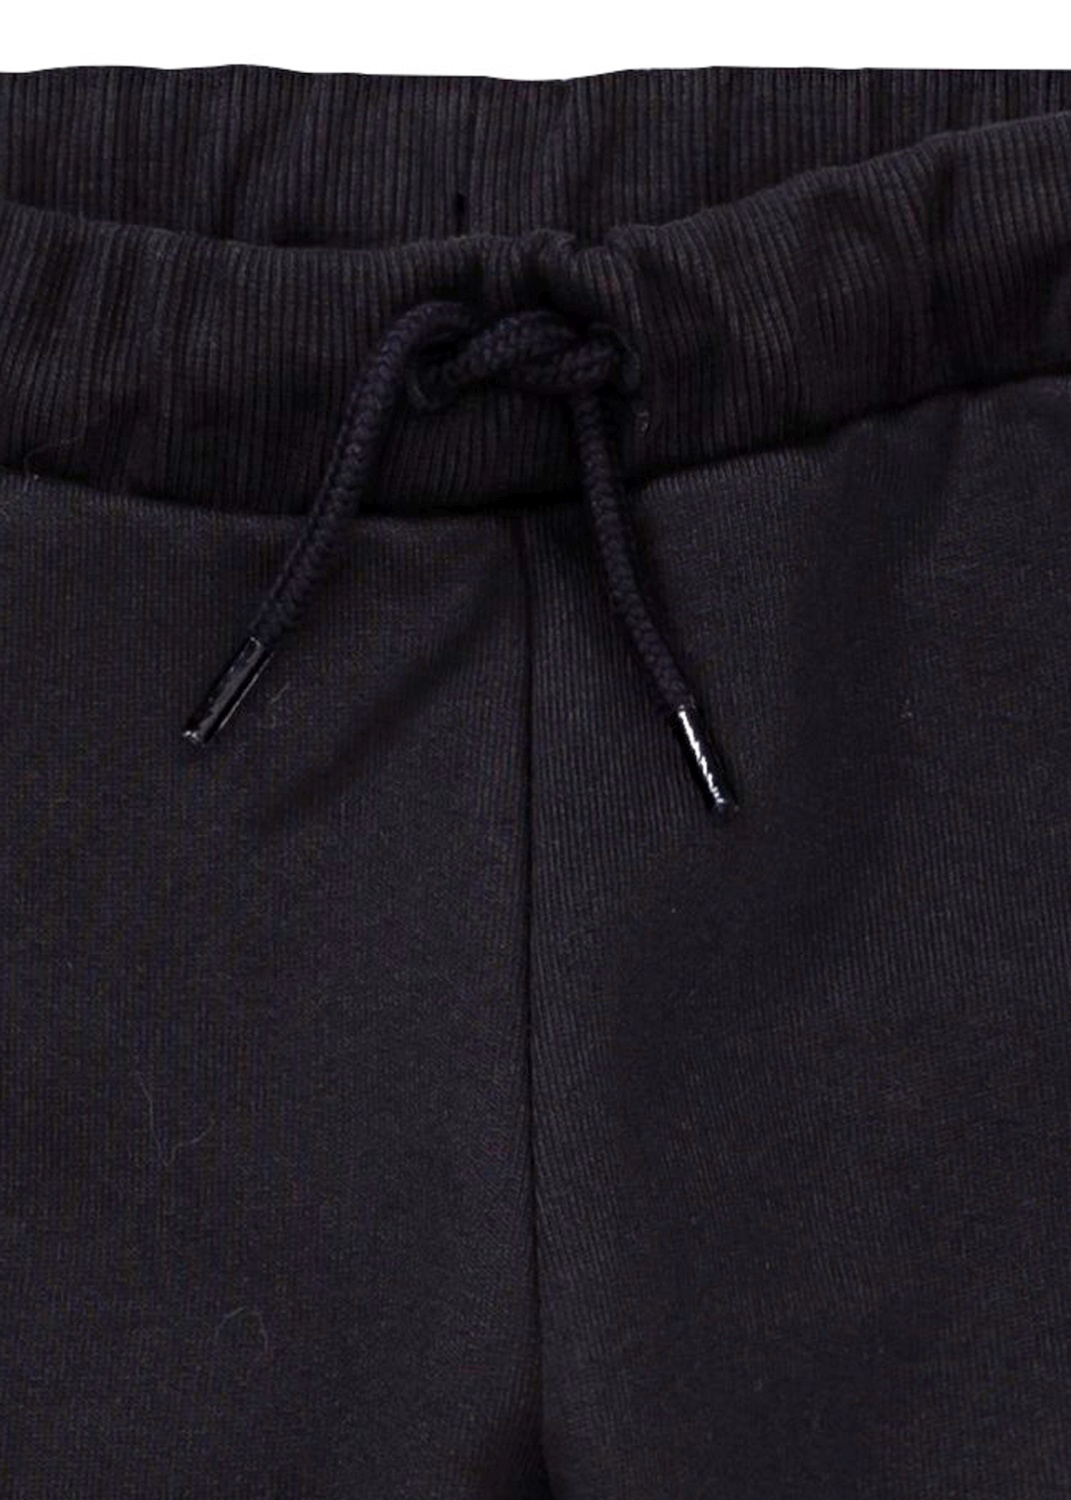 Moscow sweatpants image number 2